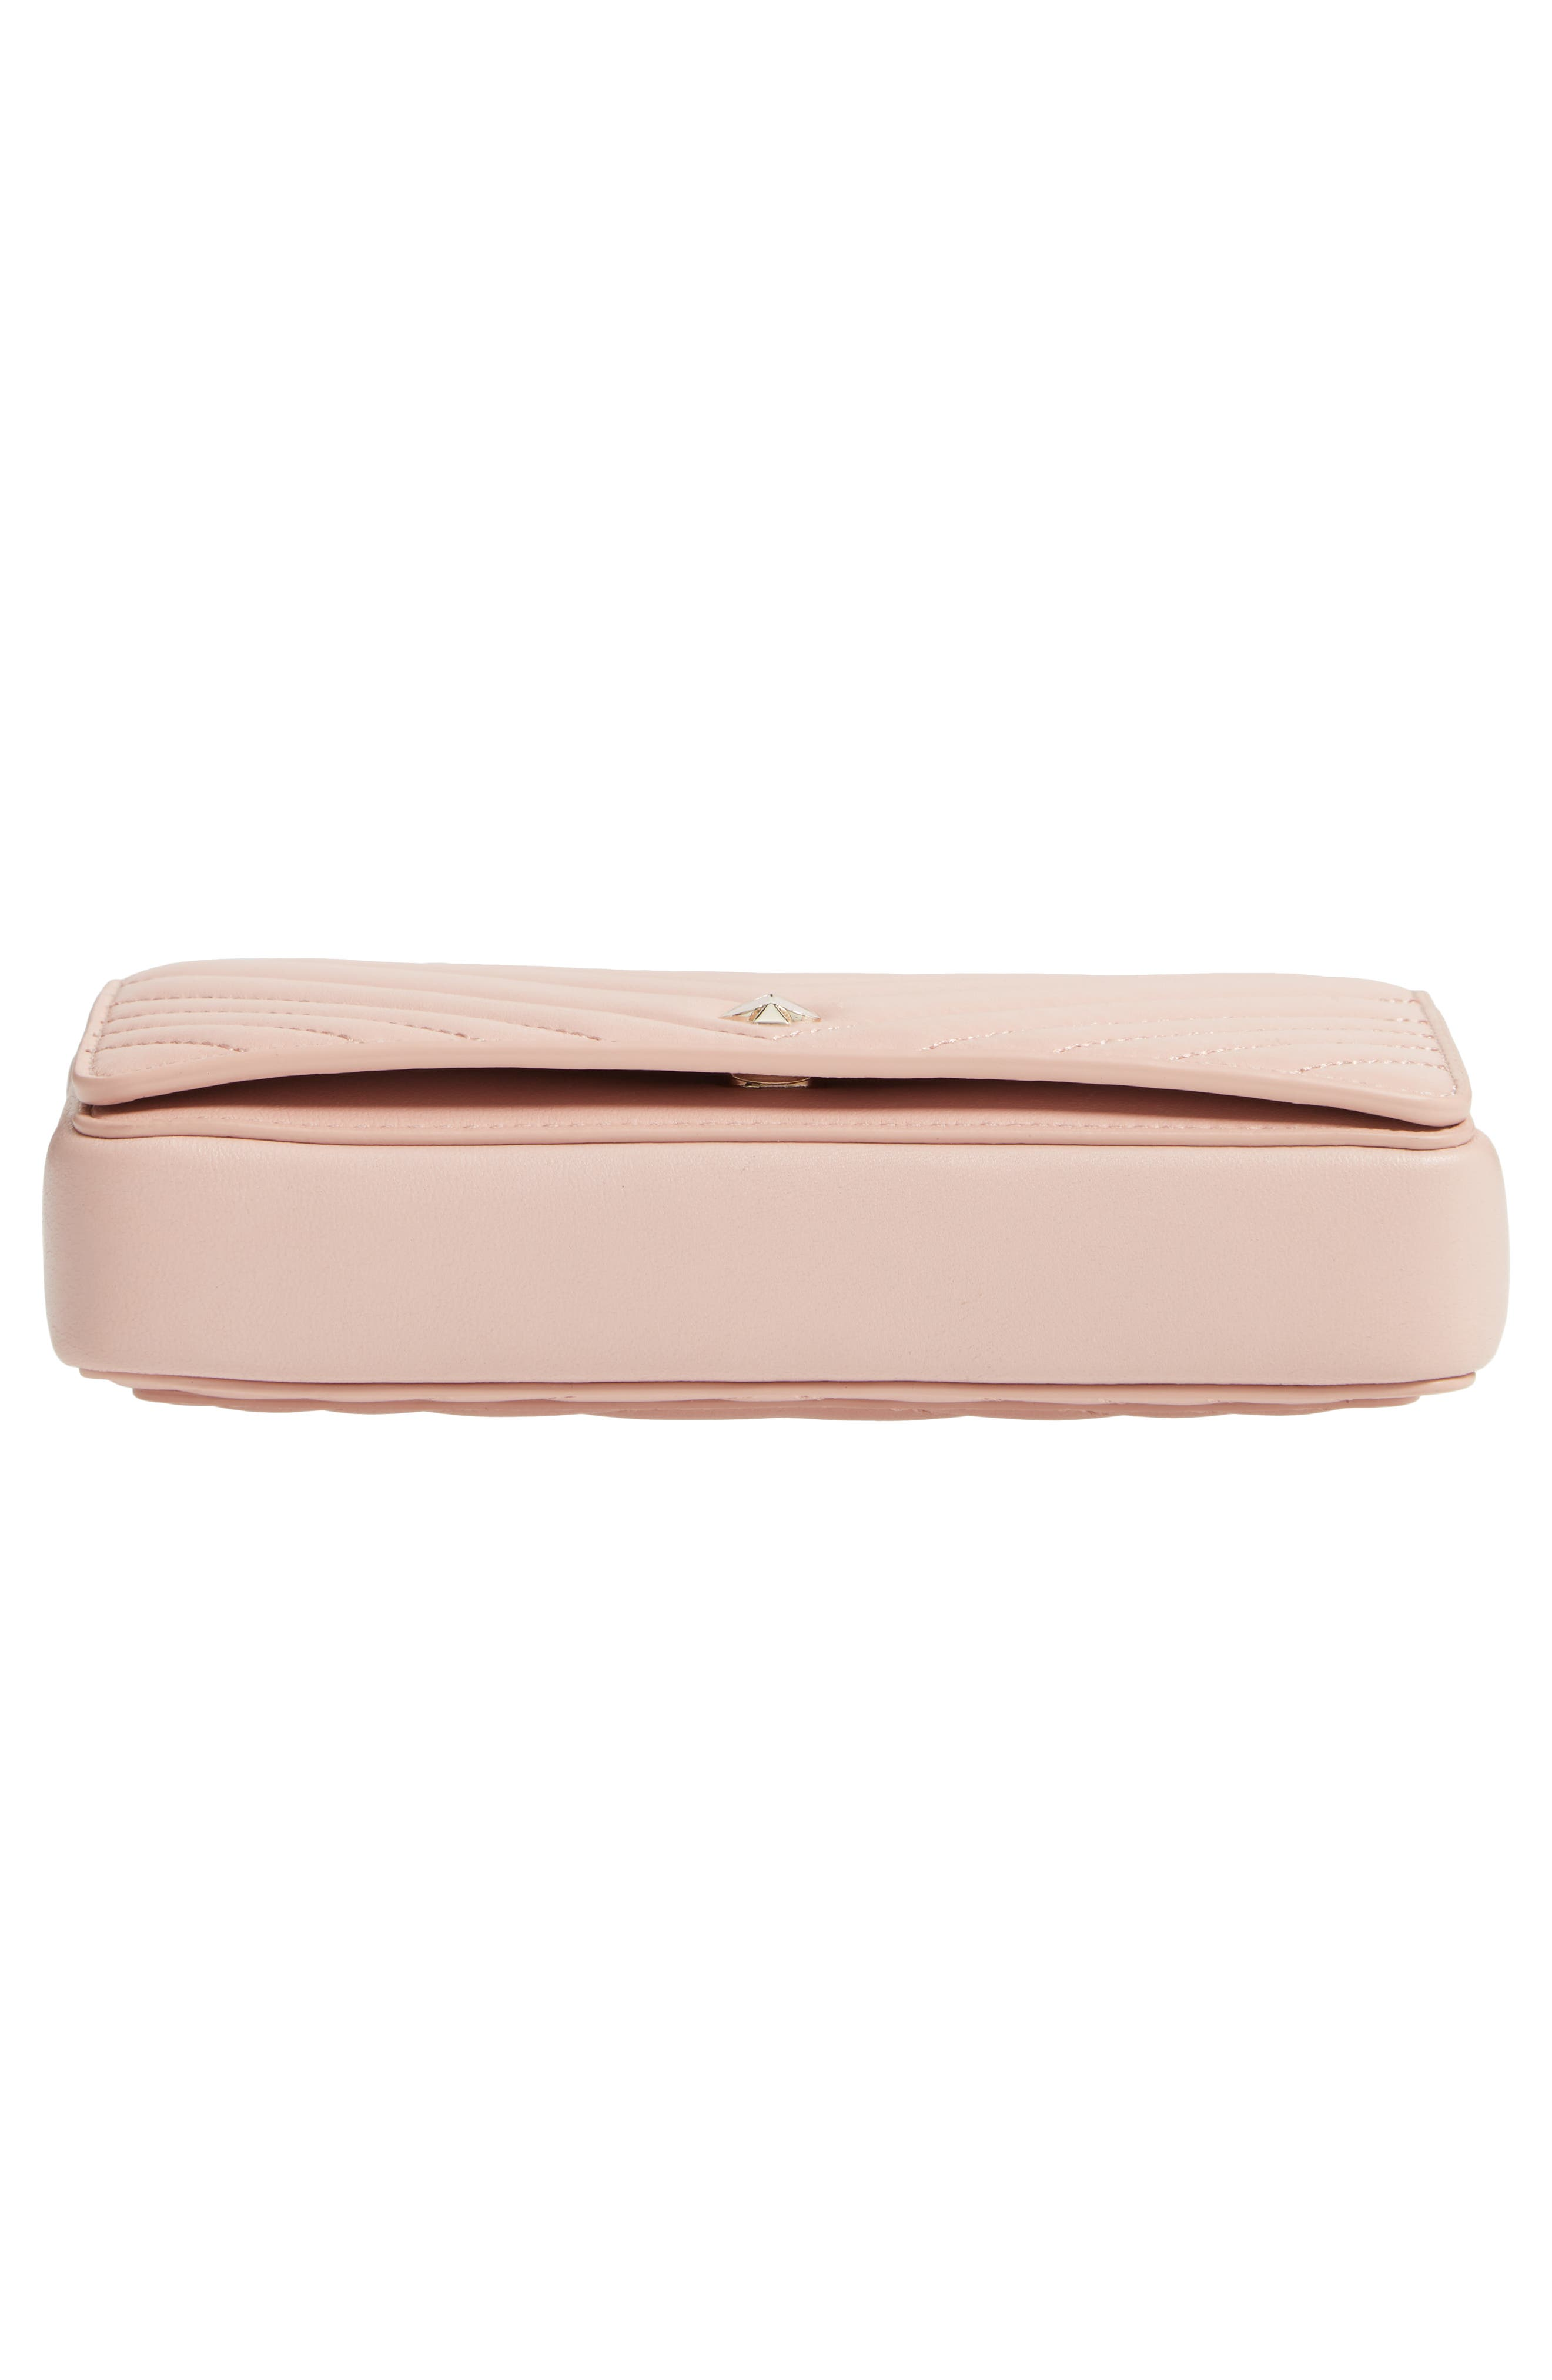 KATE SPADE NEW YORK, amelia quilted leather clutch, Alternate thumbnail 6, color, FLAPPER PINK